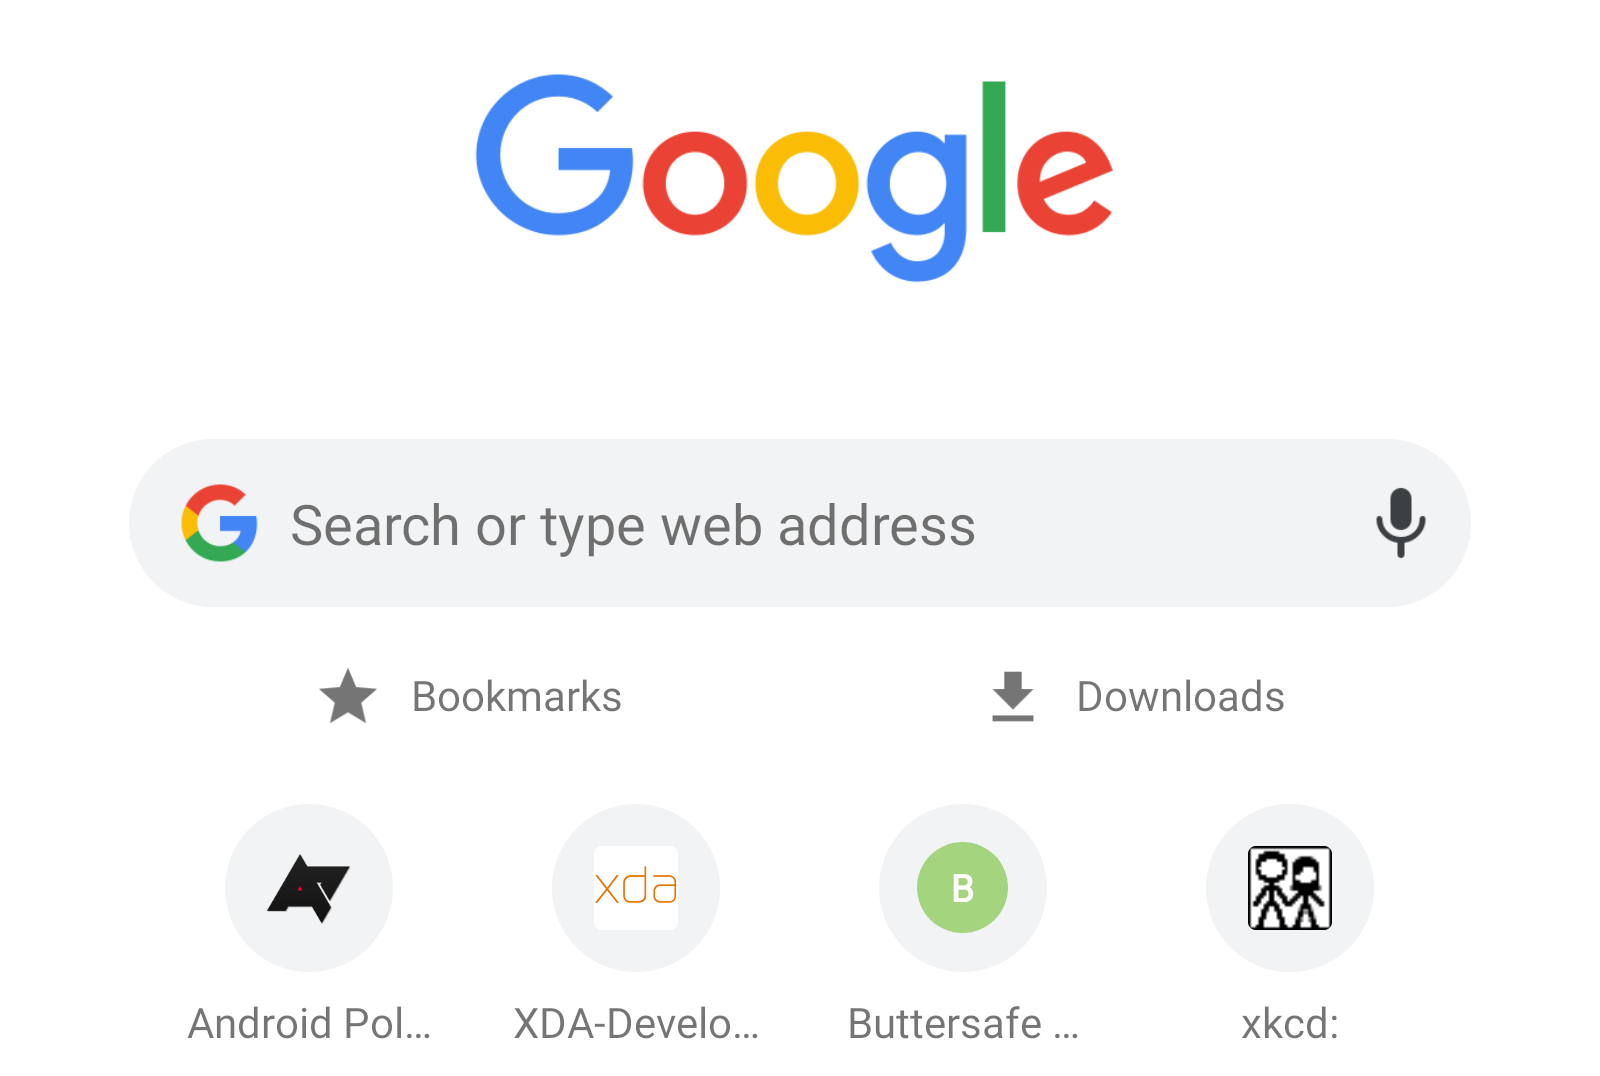 Tip: Get a shortcut to Bookmarks and Downloads on every new Chrome